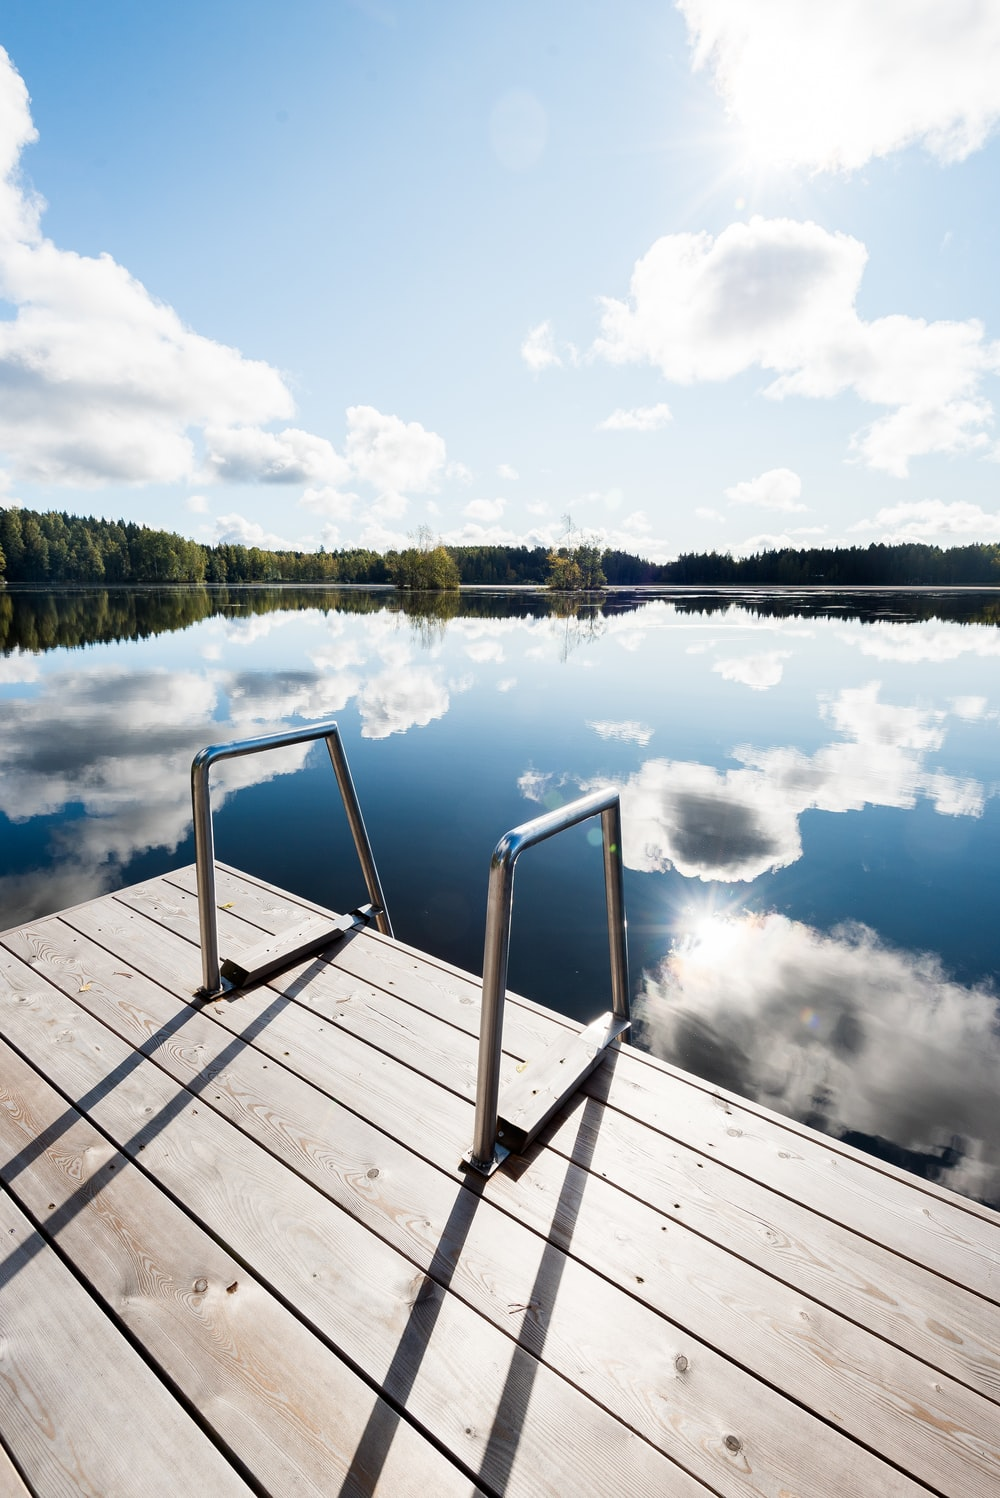 brown wooden dock over body of water during daytime